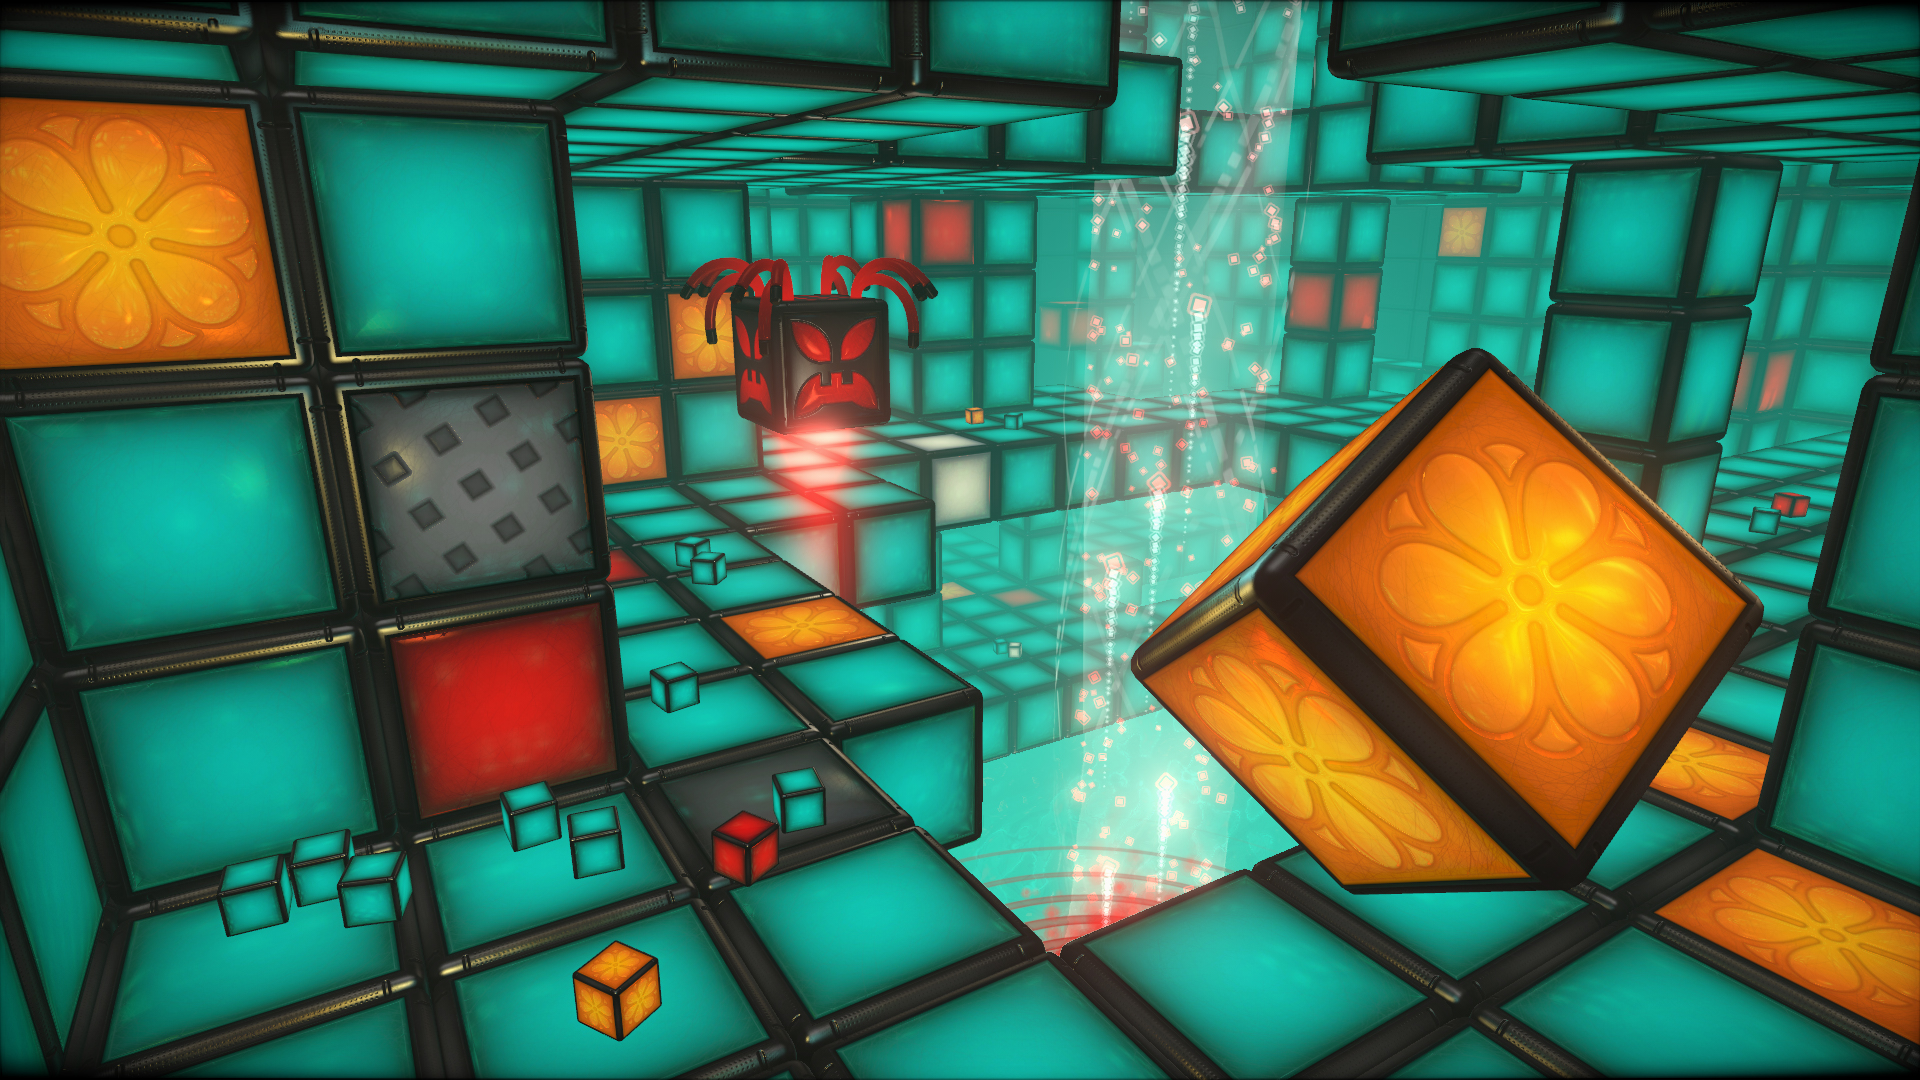 An environment consisting of colorful, glowing blocks